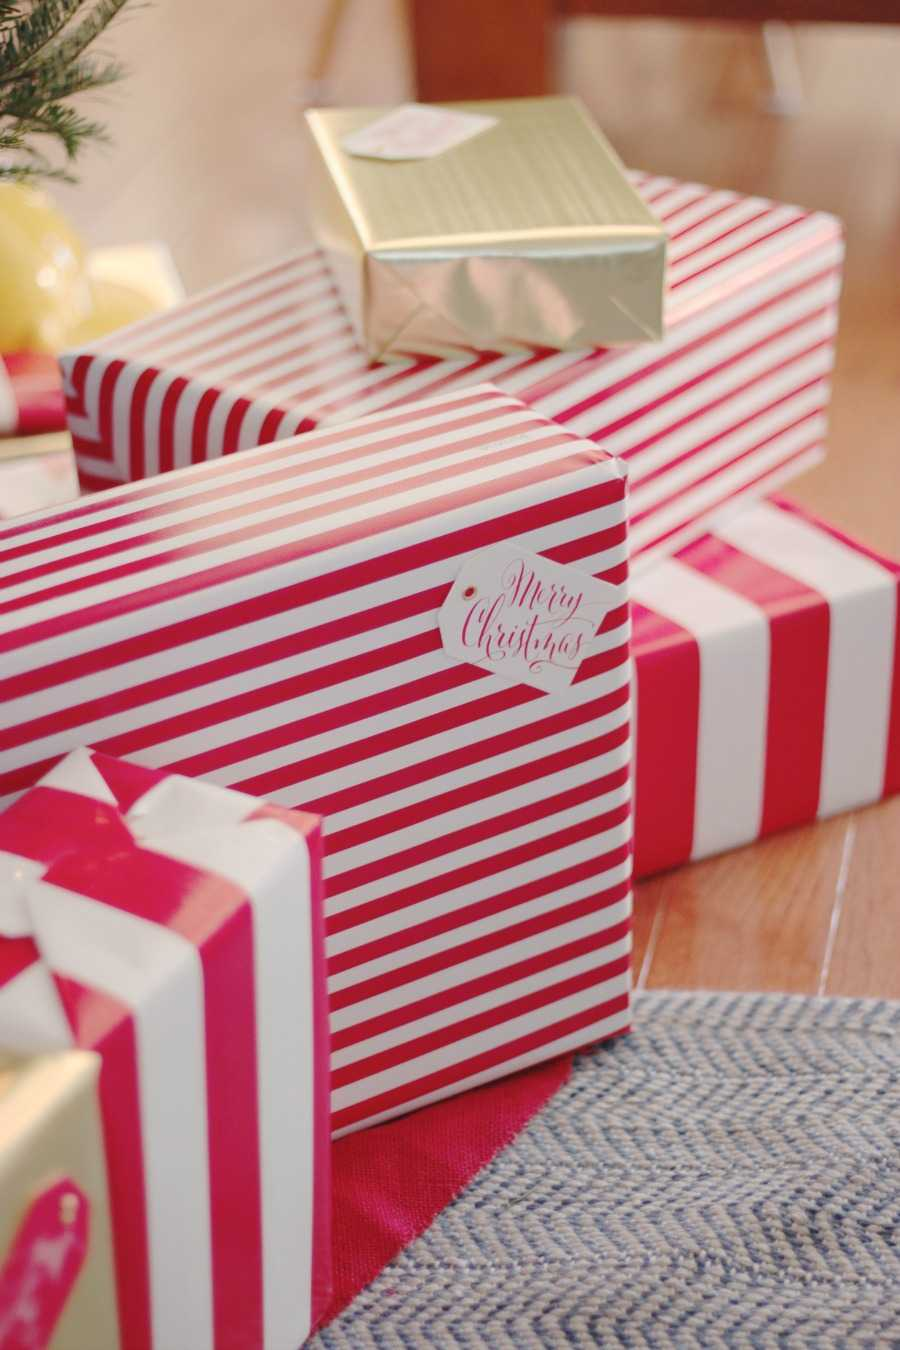 5 Easy Ways to Get Your Home Holiday Ready